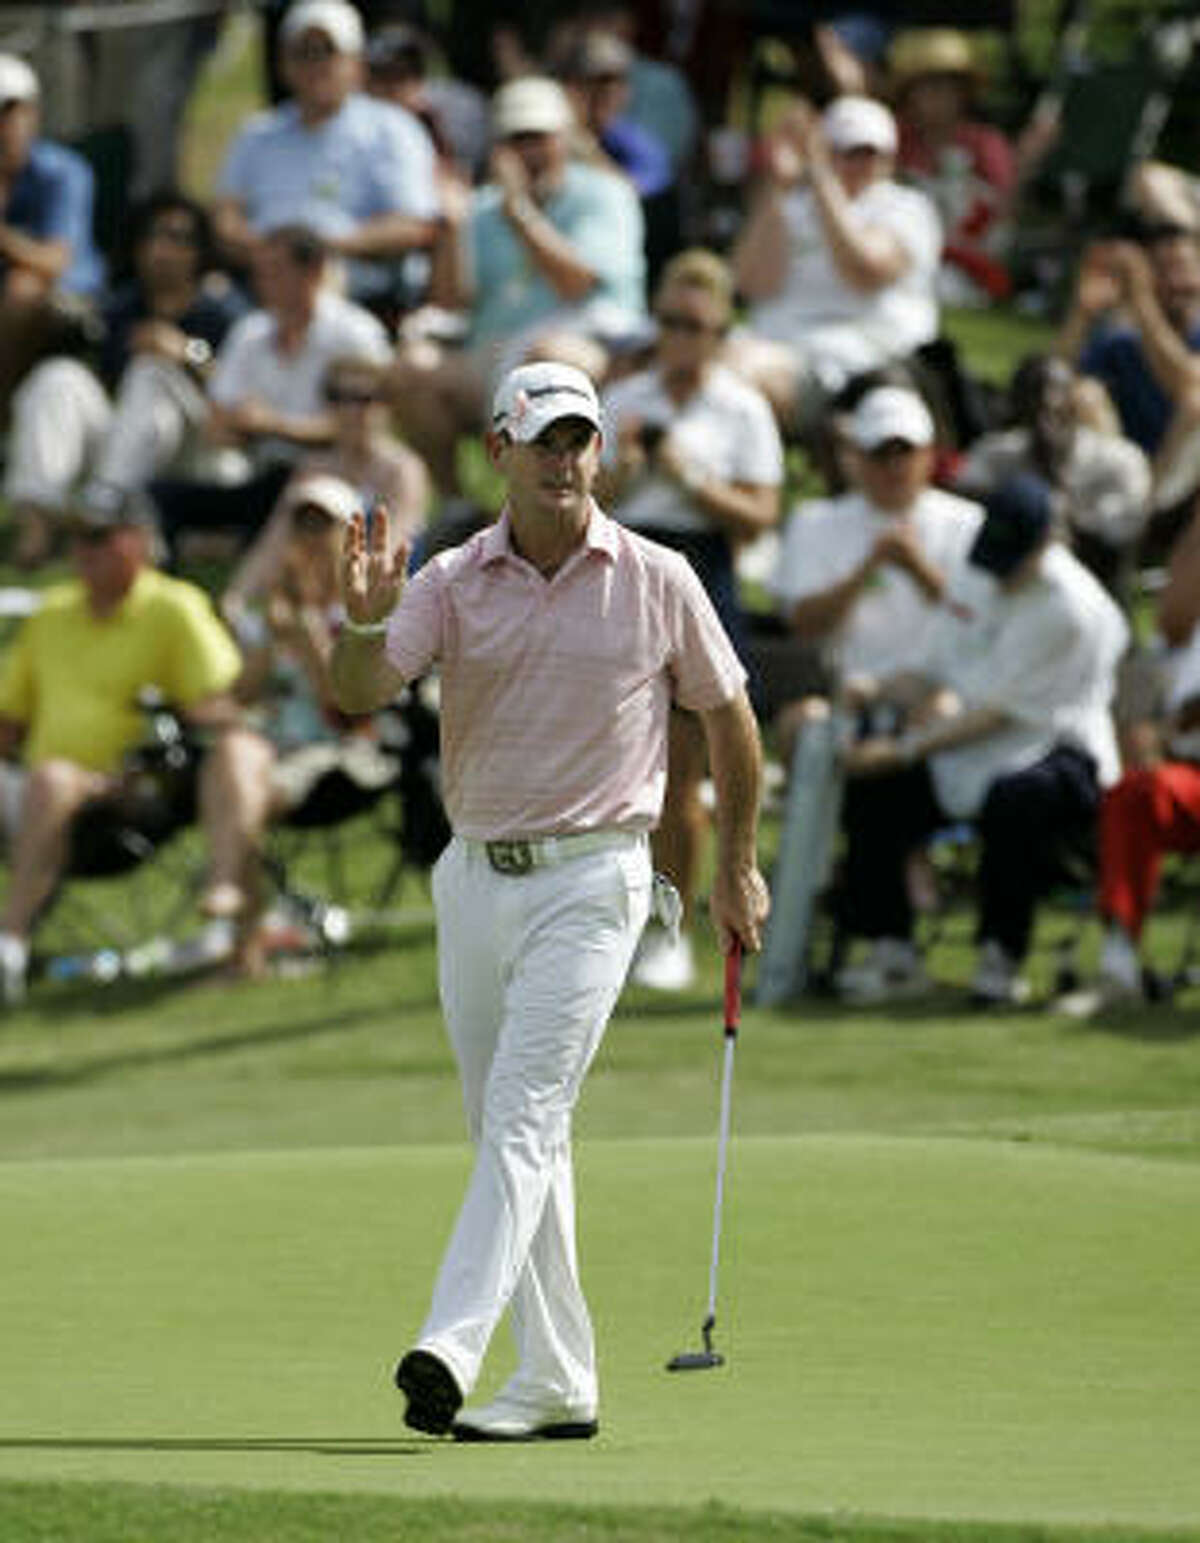 Rory Sabbatini joined many players and caddies in wearing pink in support of Amy Mickelson.